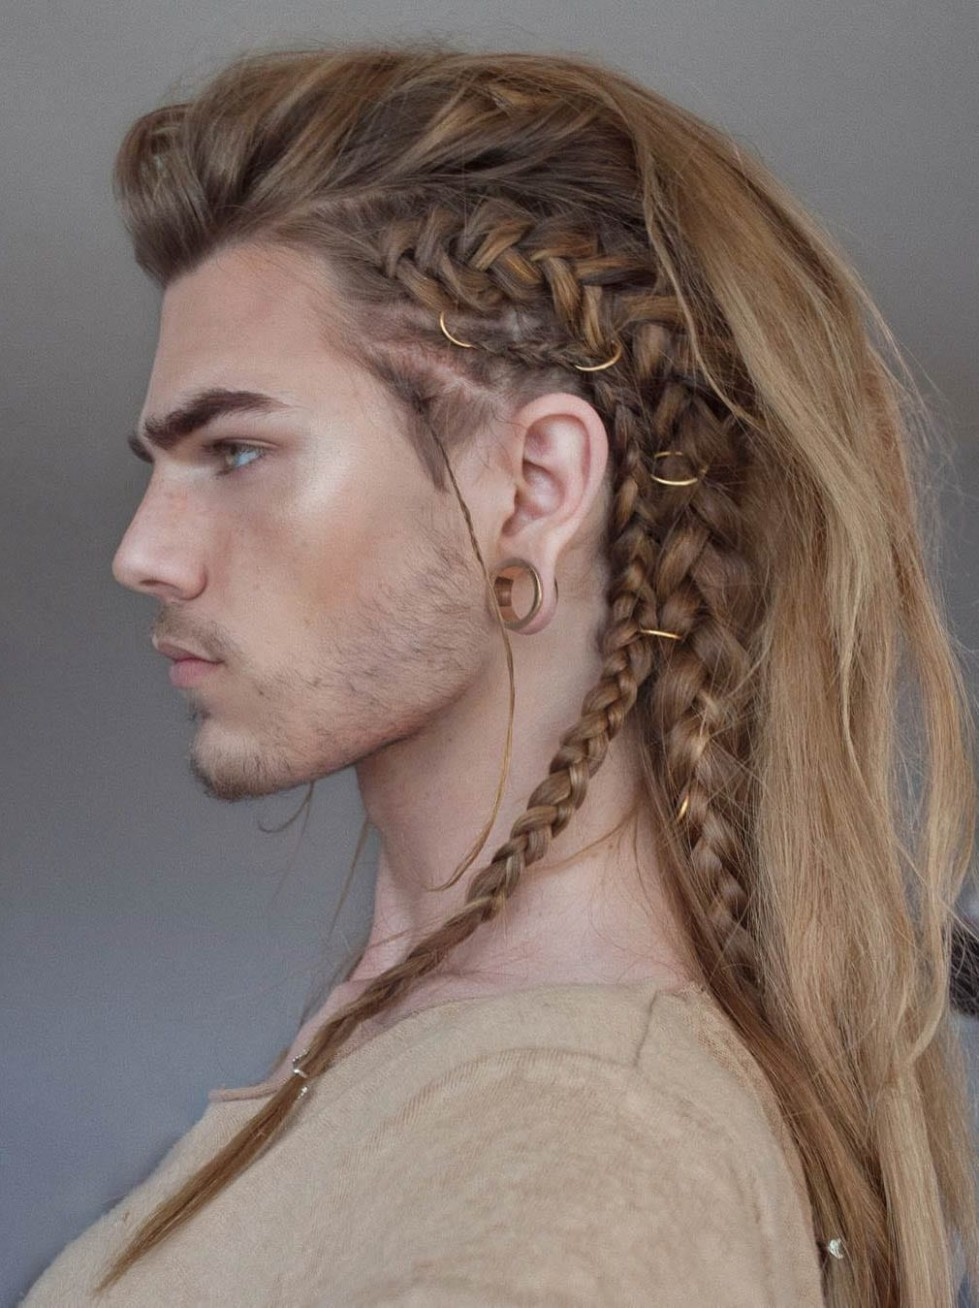 10 Modern Long Hairstyles For Men Hairstyles For Guys With Long Hair